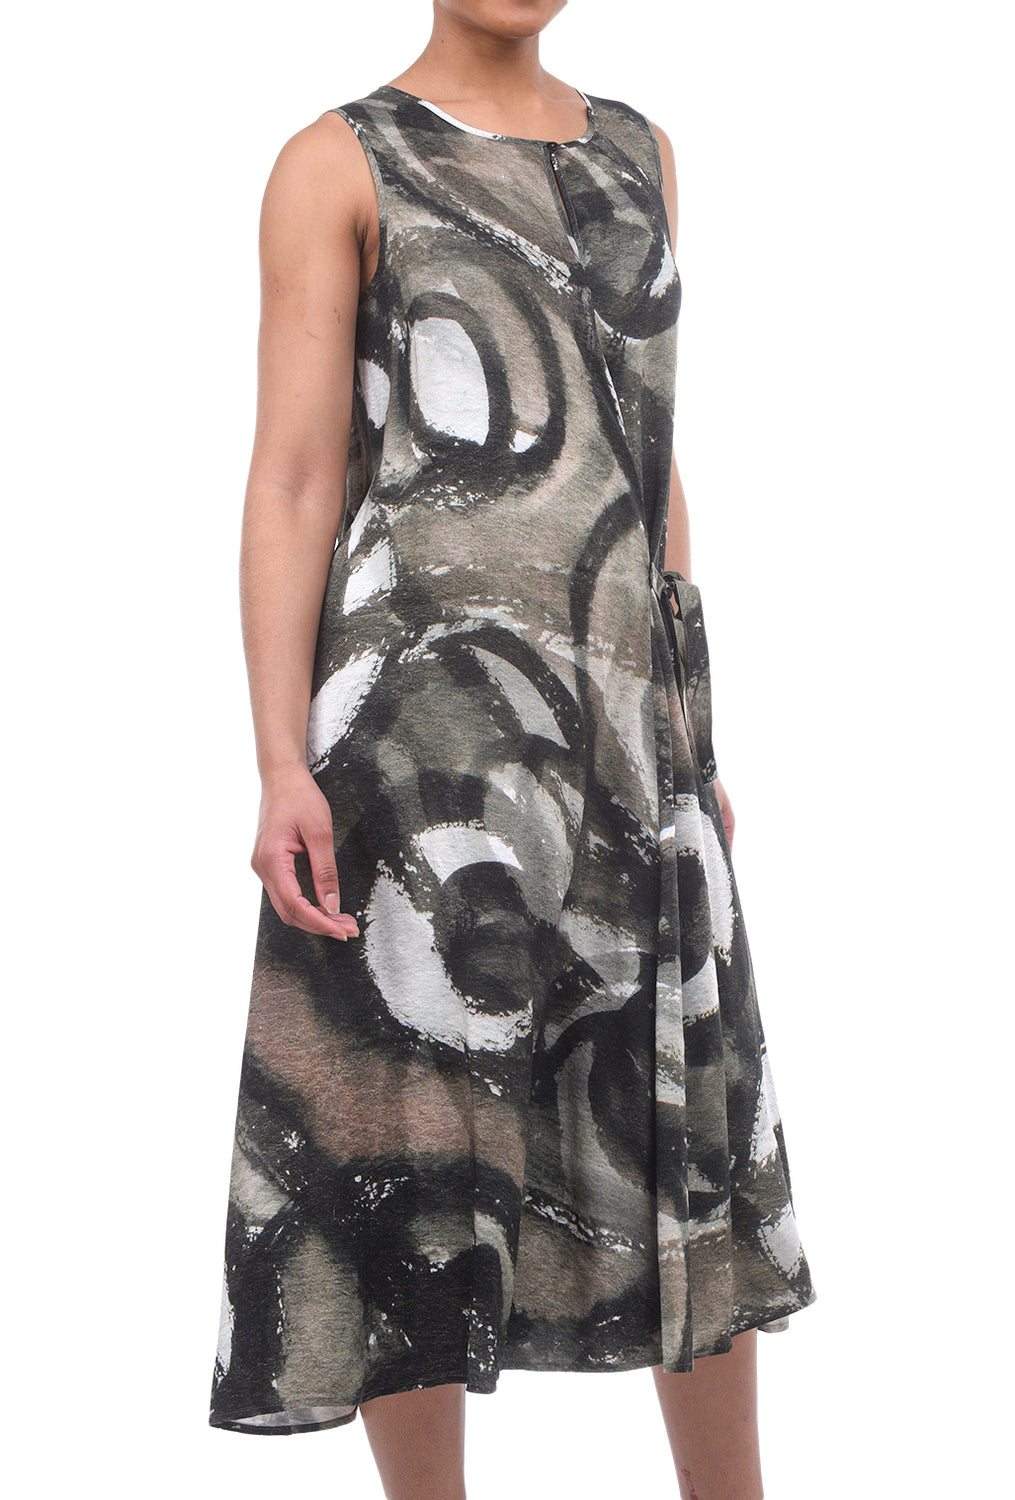 Crea Concept Abstract Side Tie Dress, Olive